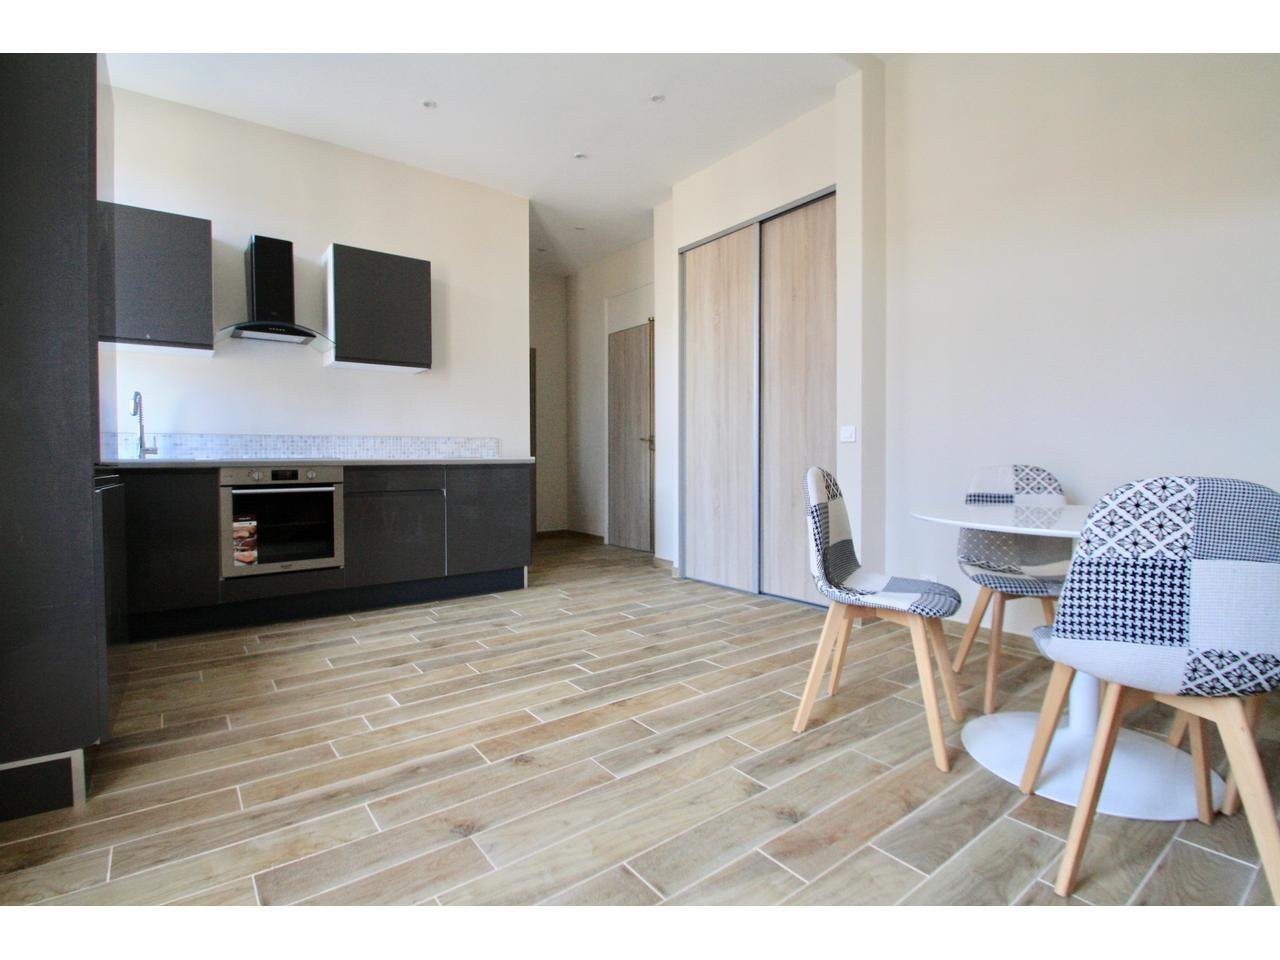 Apartment with balcony - close to everything in Cannes